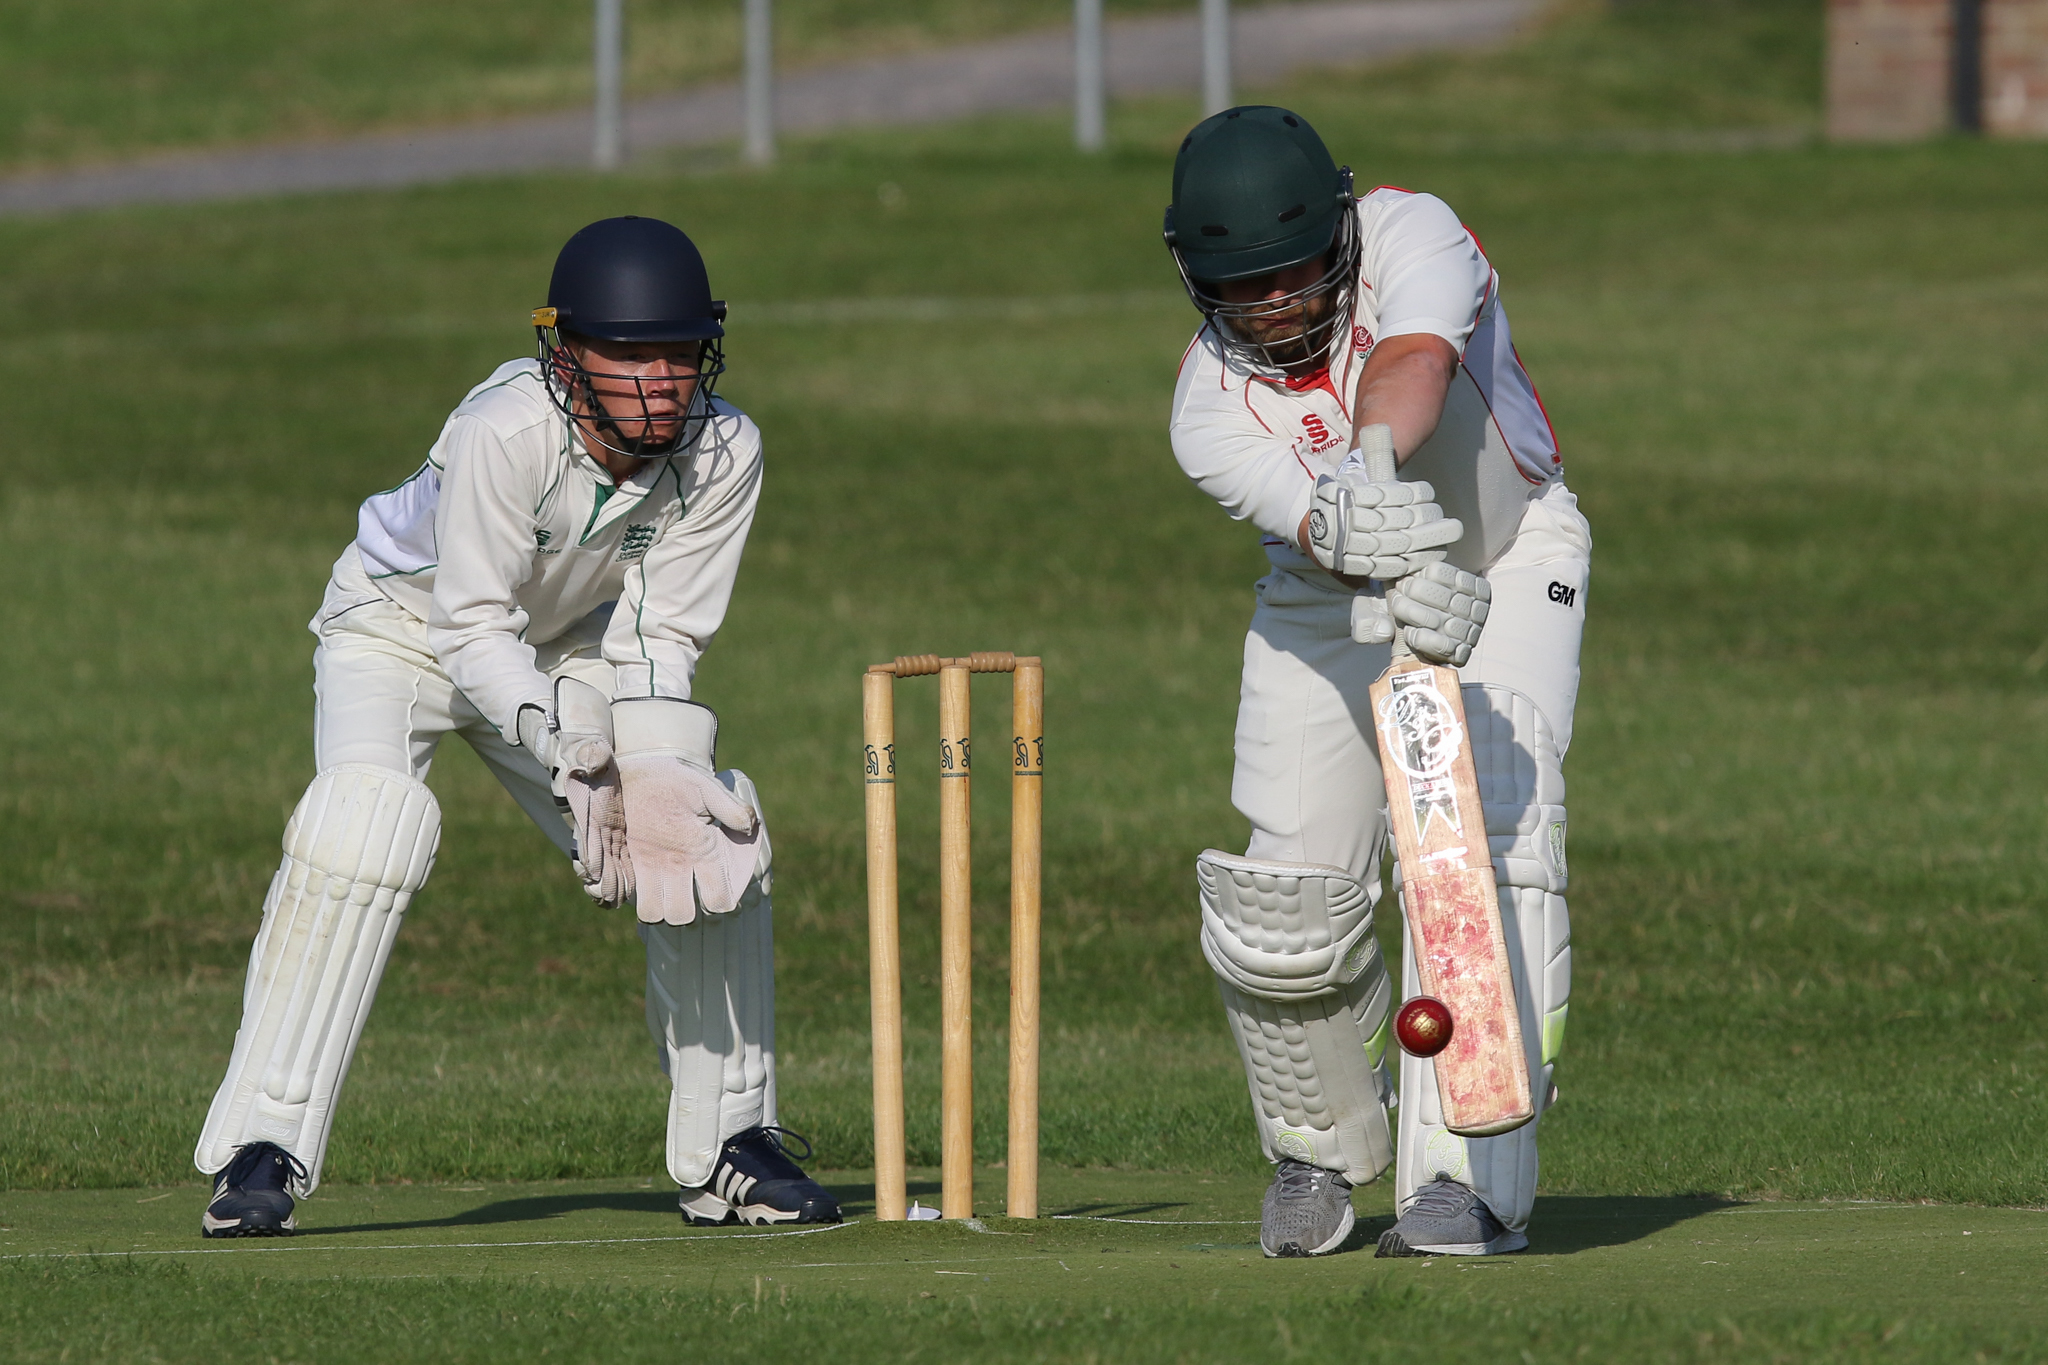 BIG WIN: Matt King, right, helped St George's to victory over Bere Regis Picture: PHIL STANDFIELD